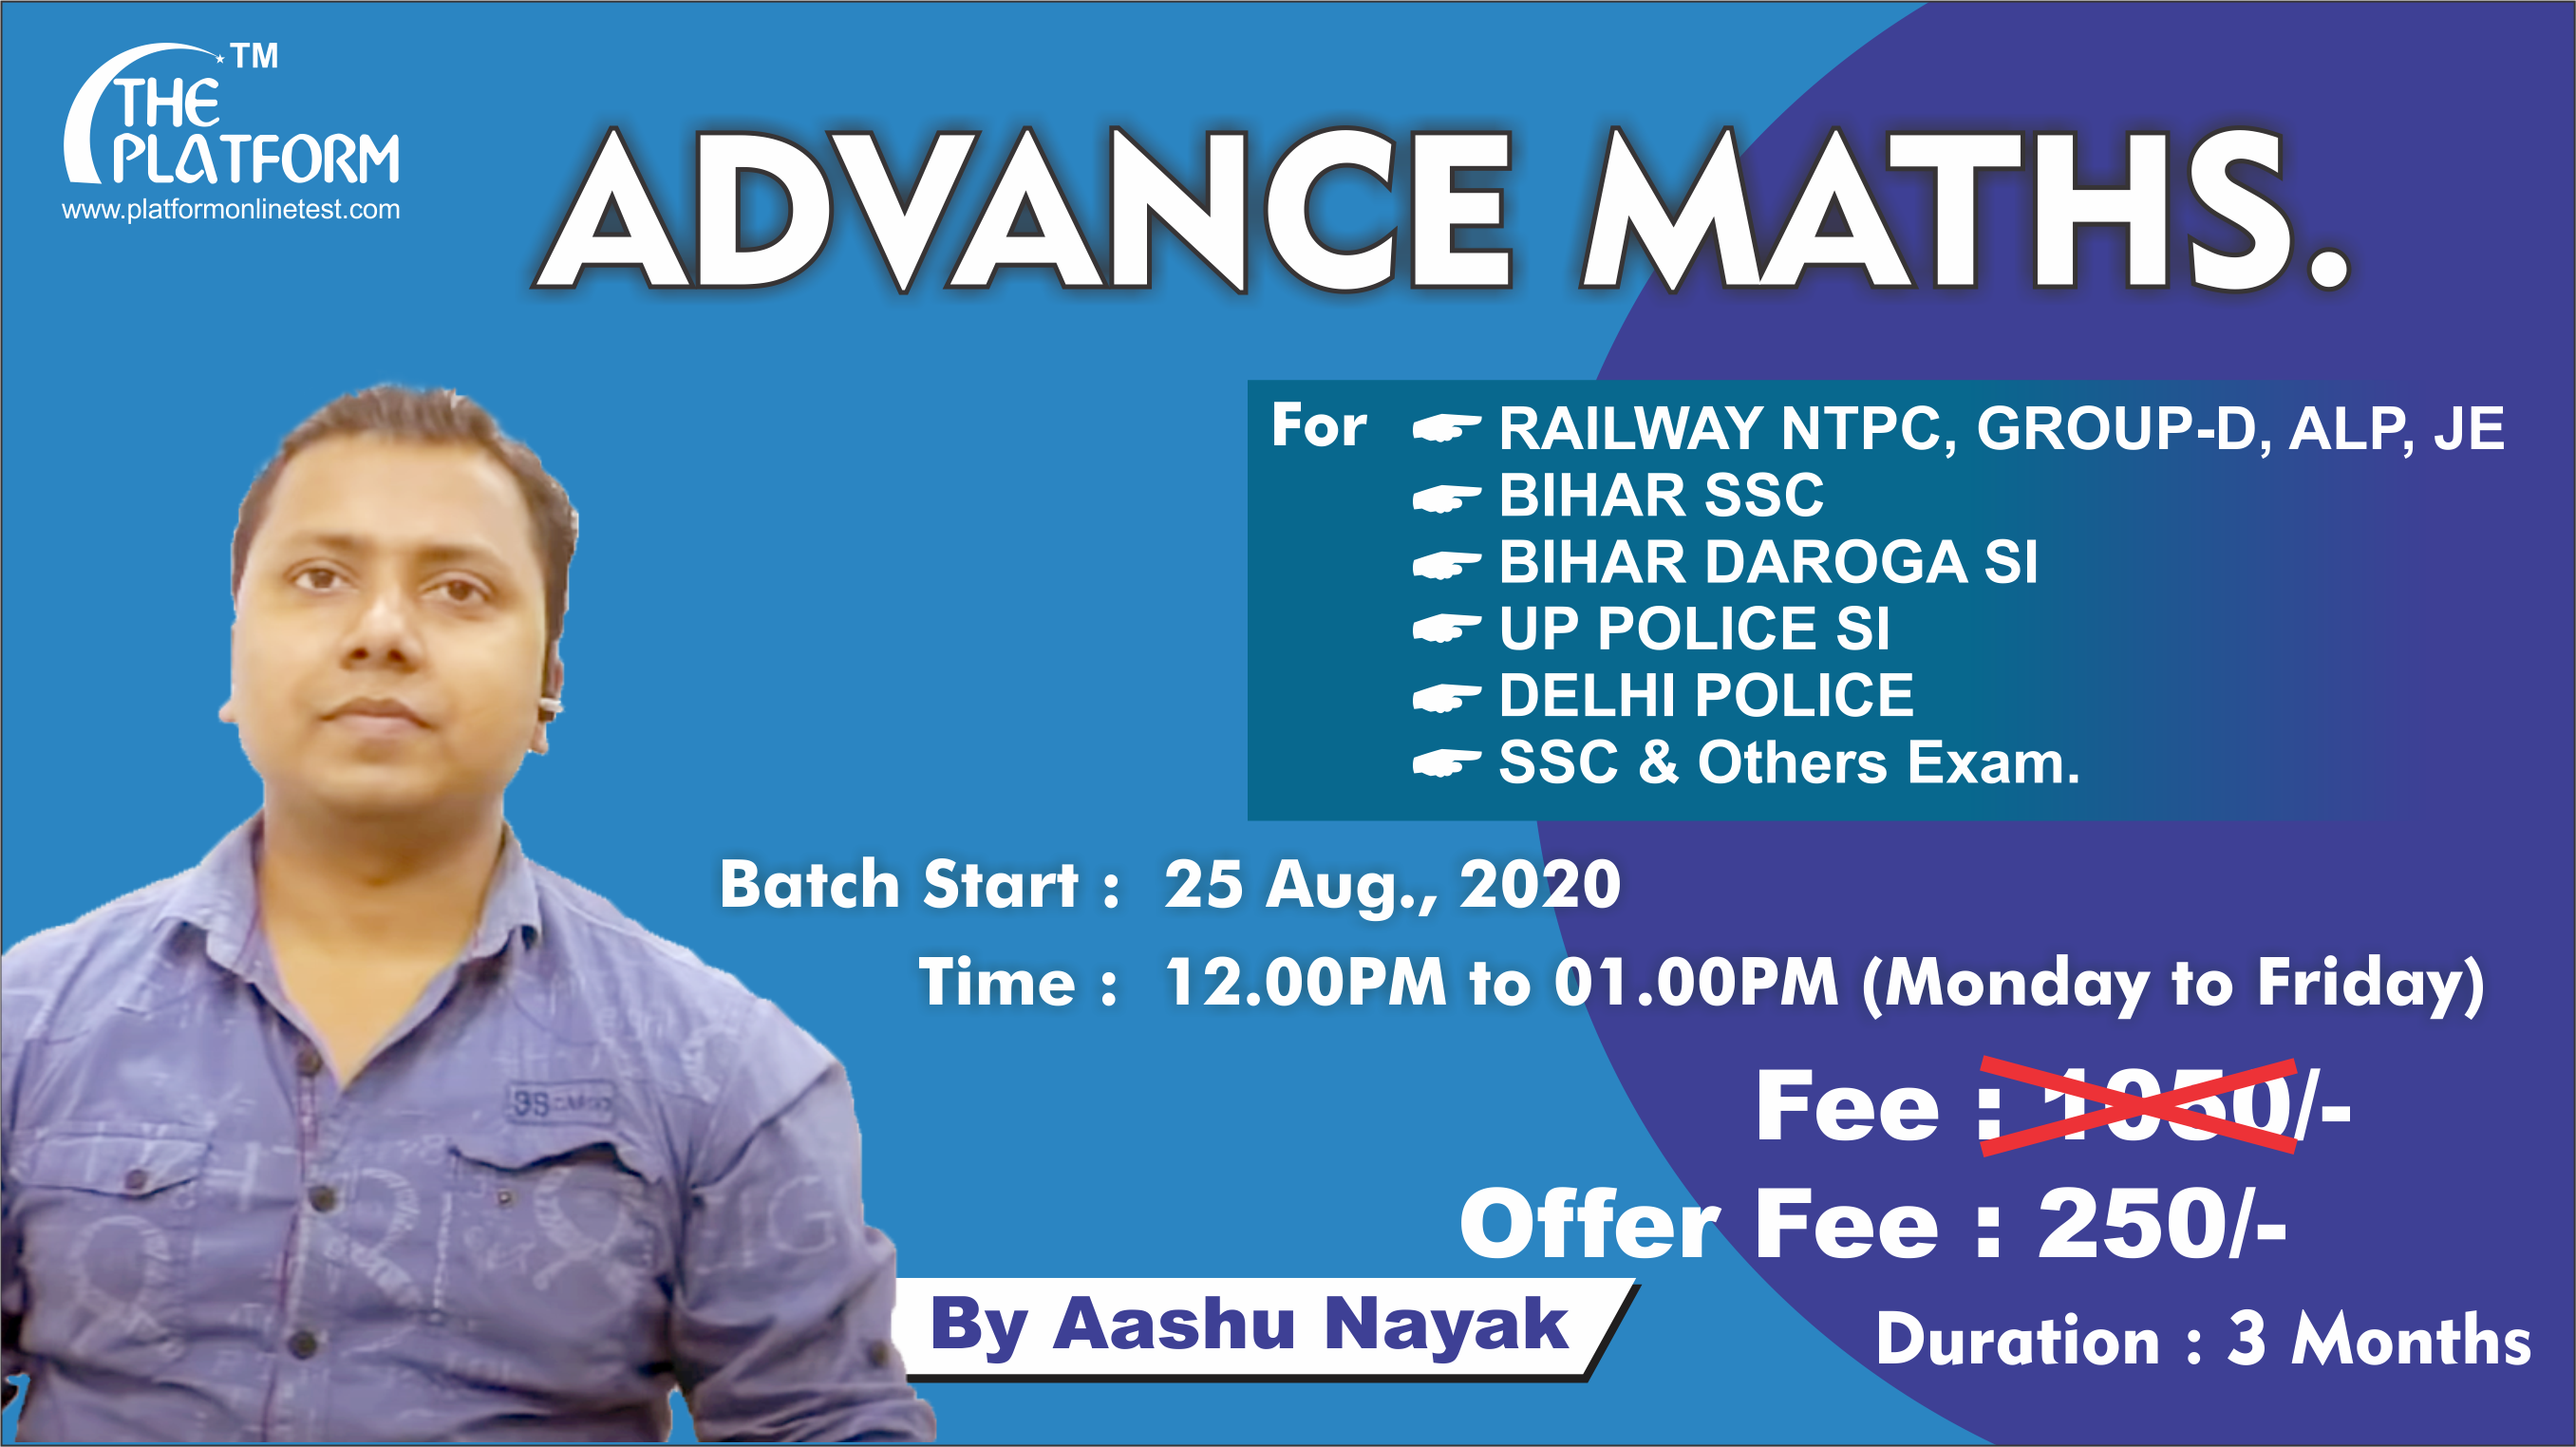 38-ADVANCE MATHS. By Aashu Nayak, Session-01